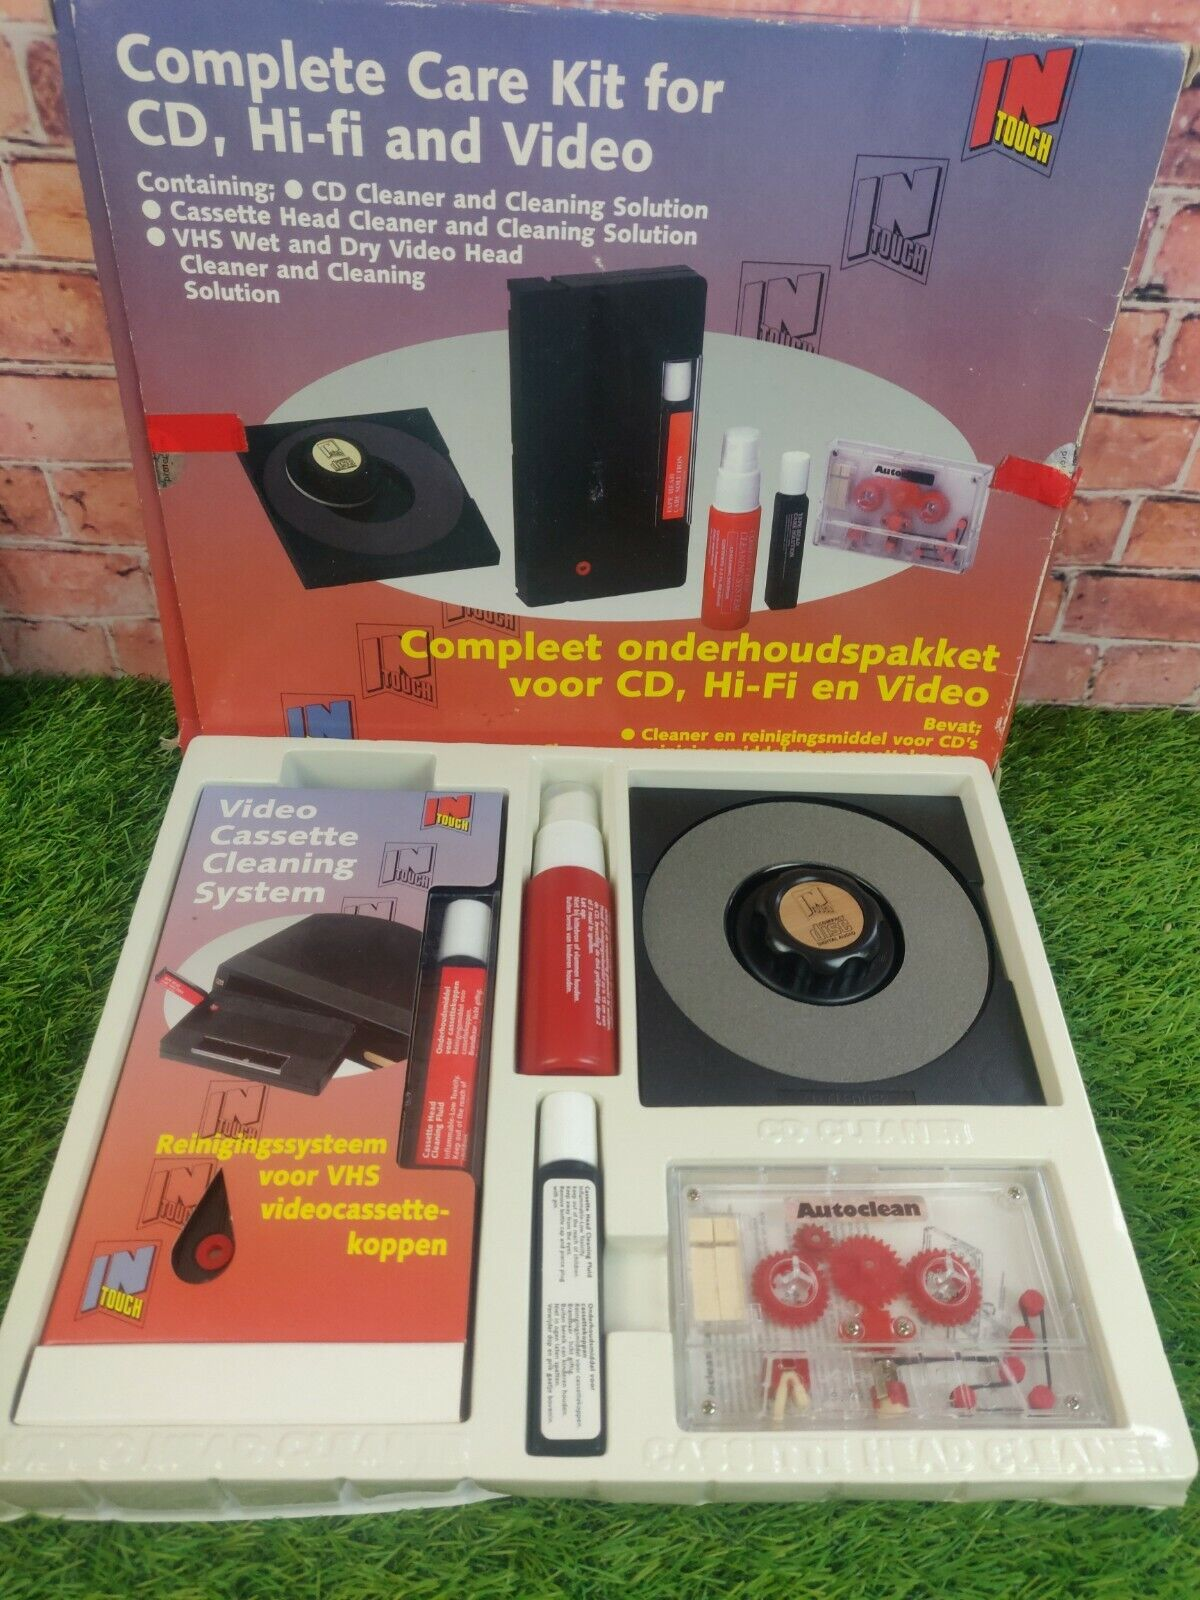 Complete Care Kit For Cd, Hifi And Video